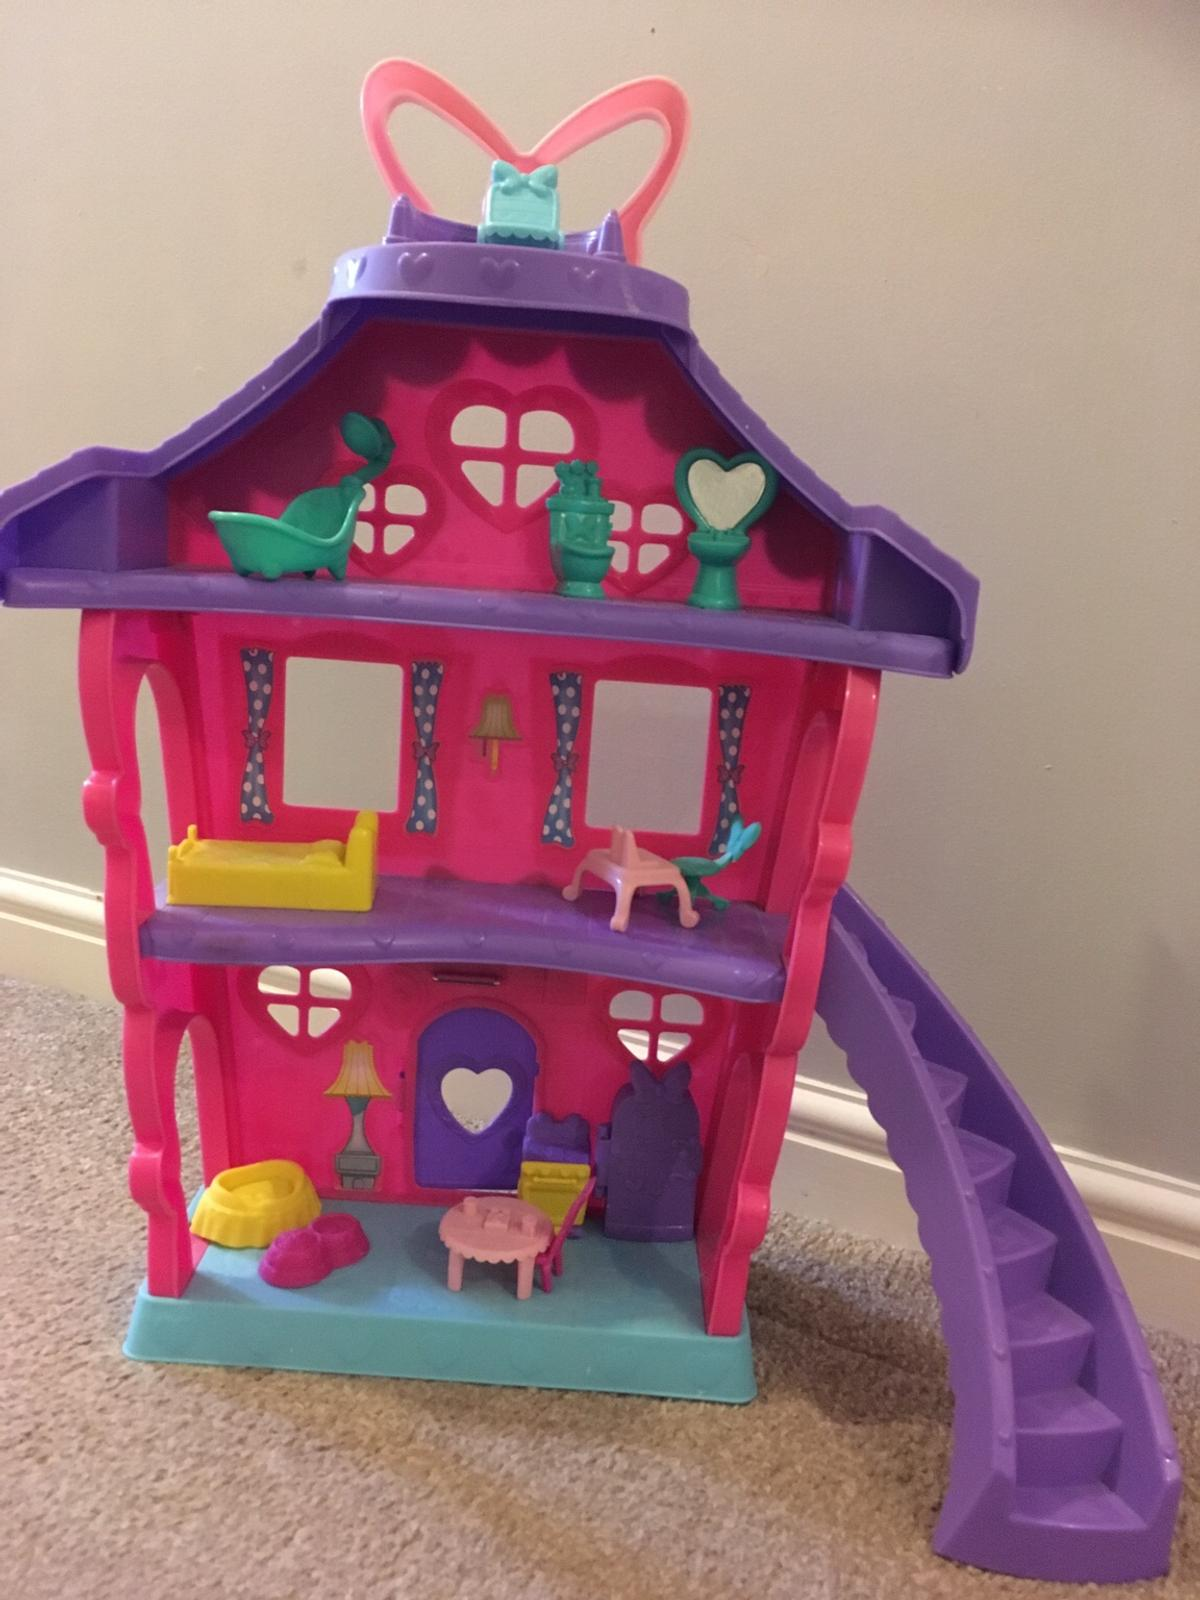 Minnie Mouse Playhouse In Np11 Maen For 5 00 For Sale Shpock